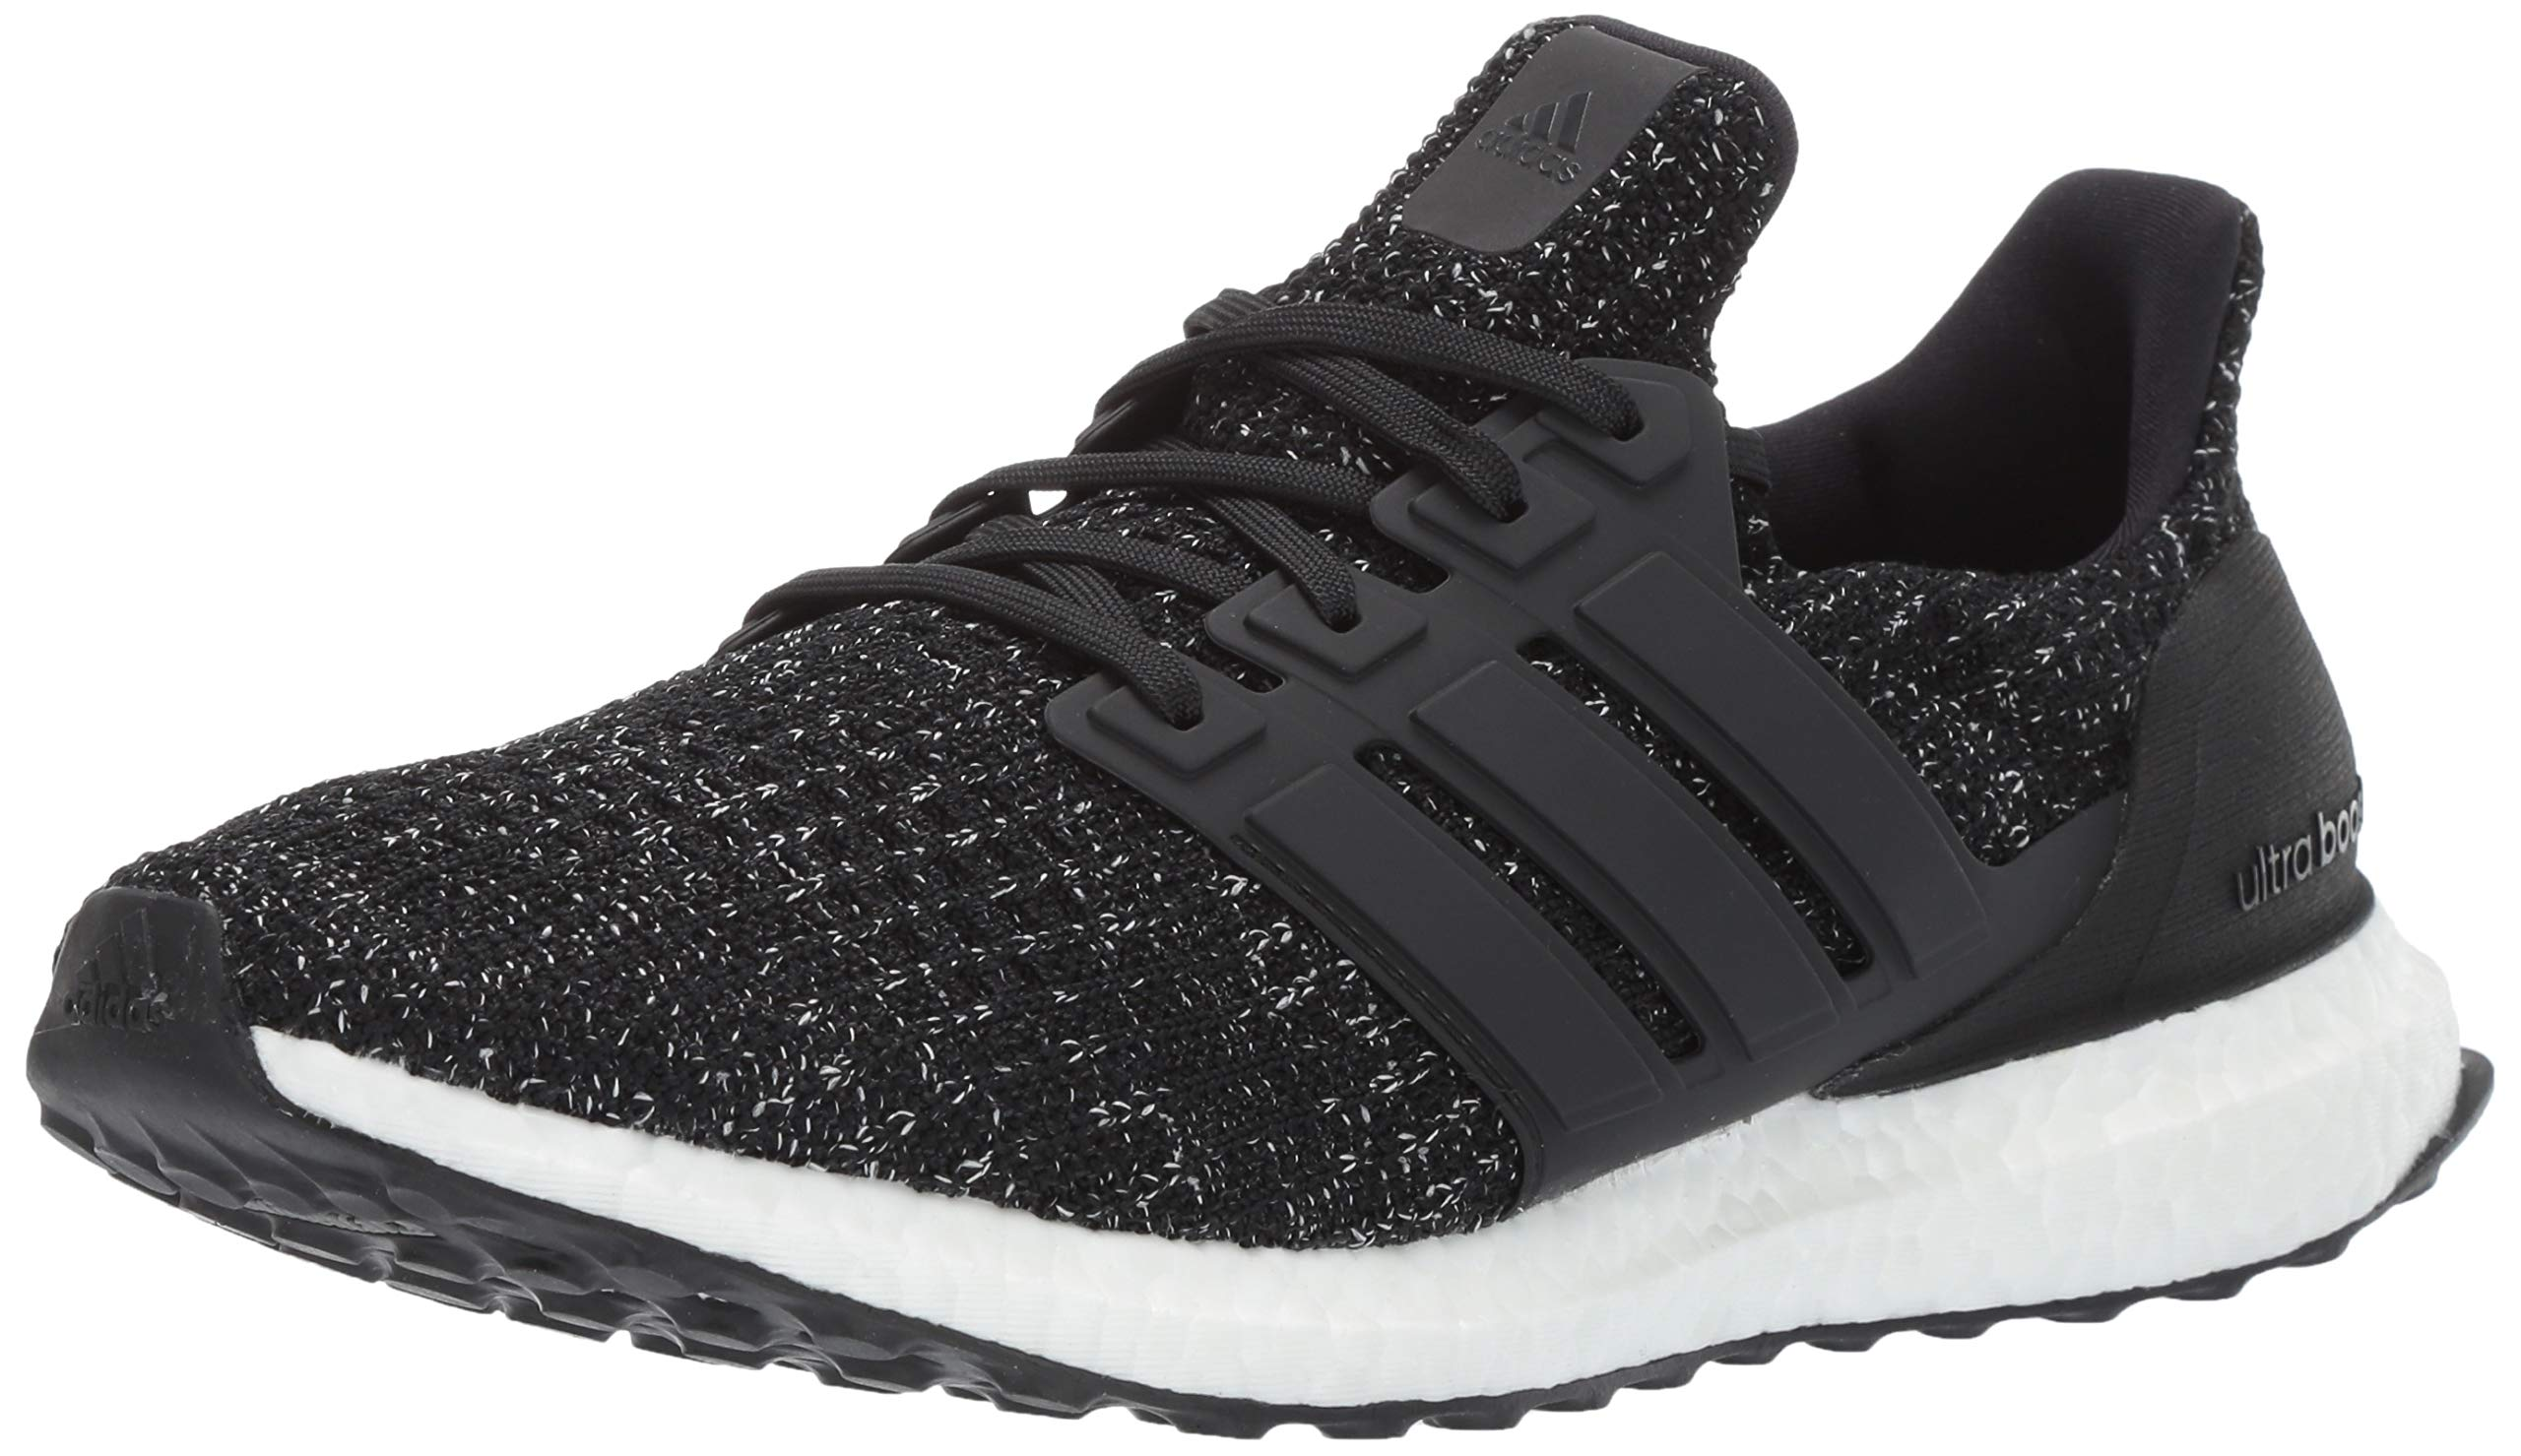 adidas Men's Ultraboost, Speckle Core Black/Cloud White, 6 M US by adidas